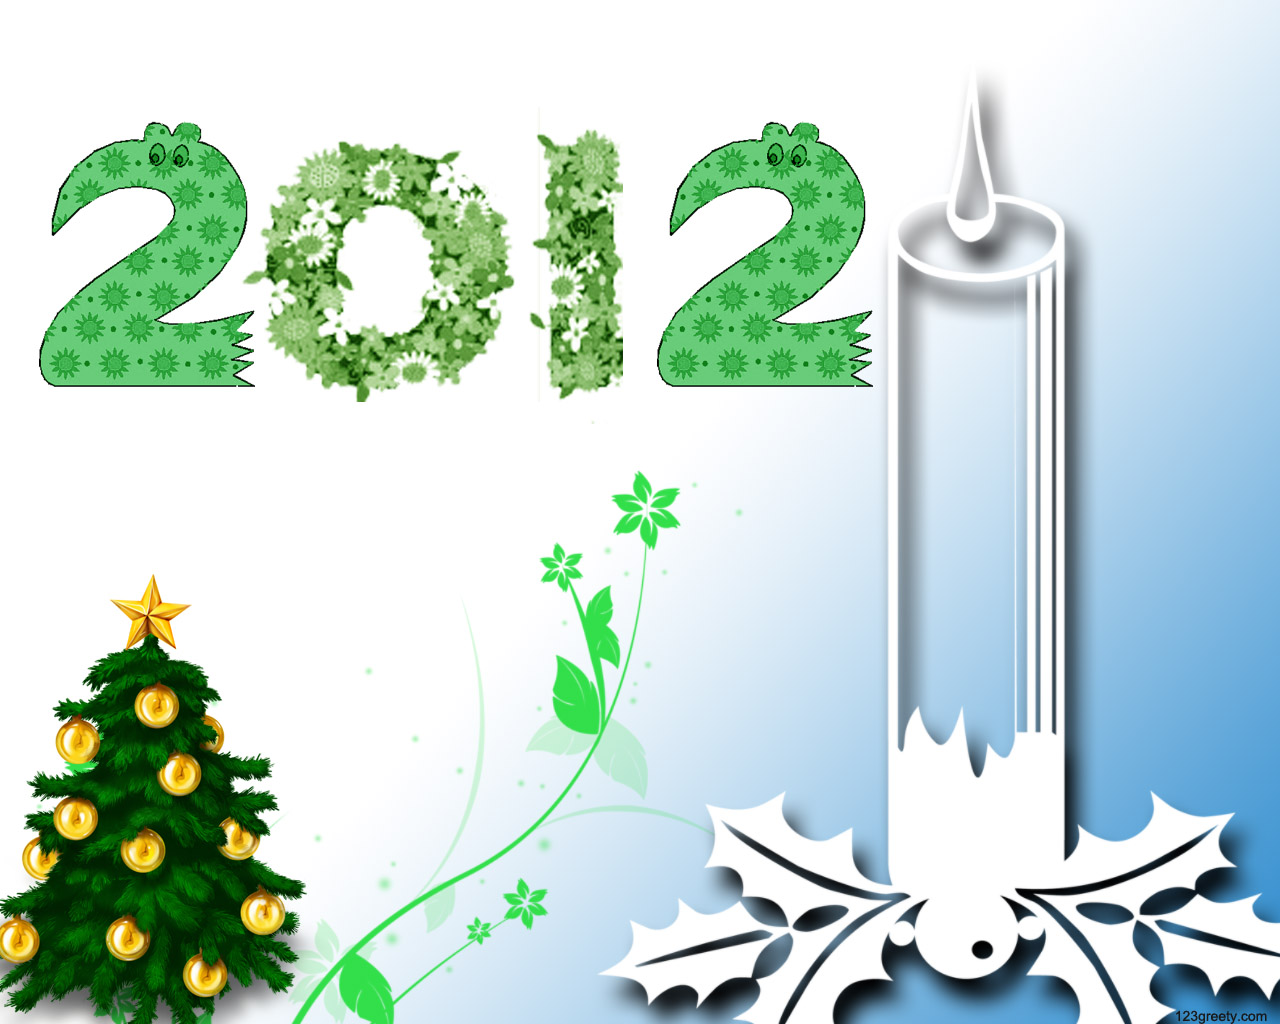 http://2.bp.blogspot.com/-X_Kc51-DZAE/Tuz_9ExvUPI/AAAAAAAAAWI/LwSHtF_j6SY/s1600/Welcome-2012-New-Year-Greetings04.jpg